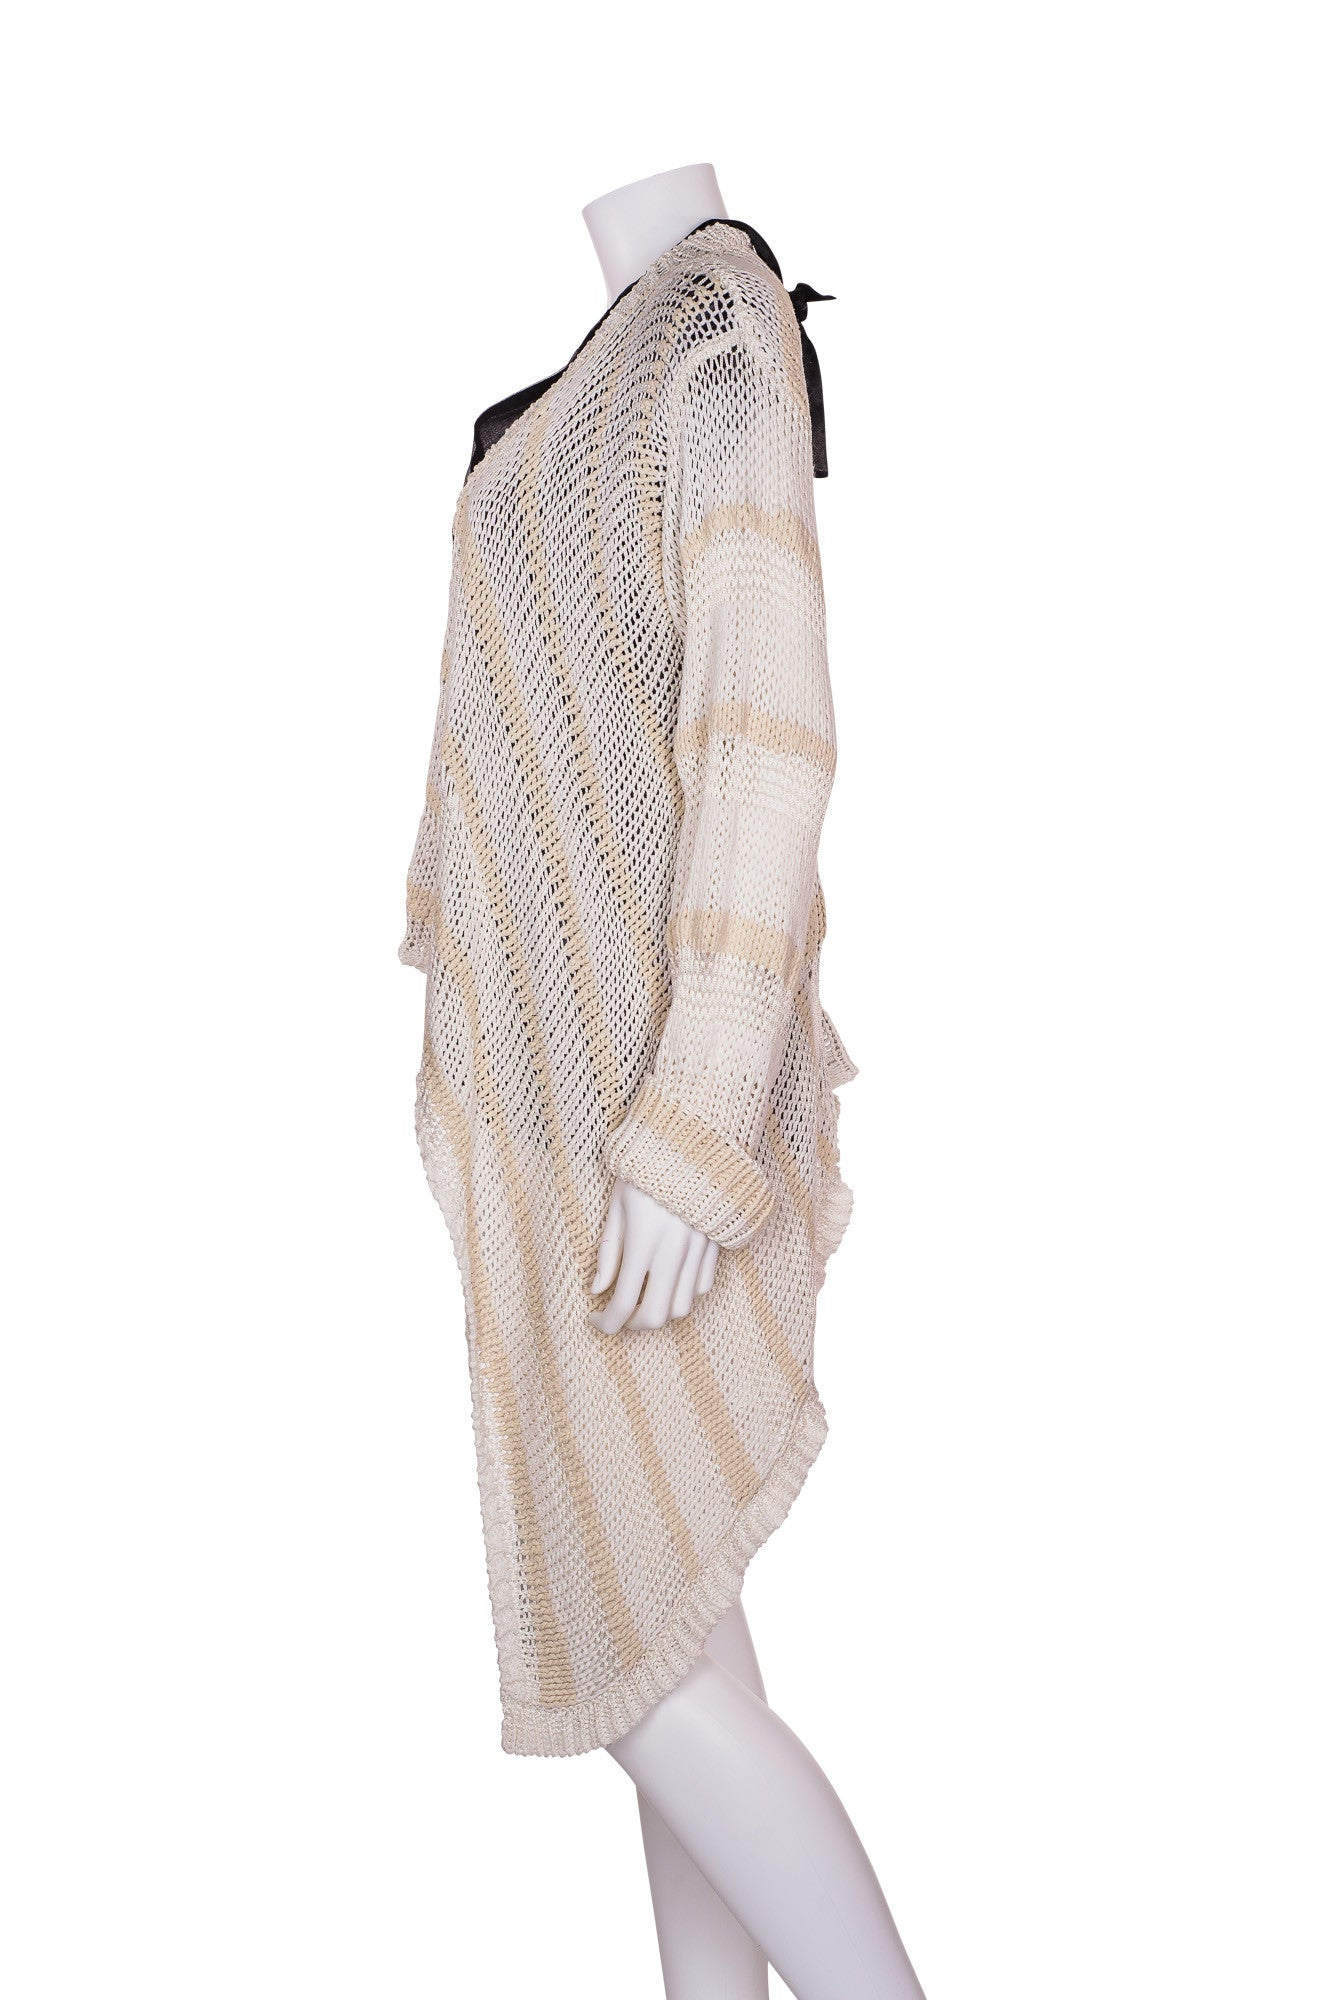 RACHEL ZOE Oversized Open Knit Sweater